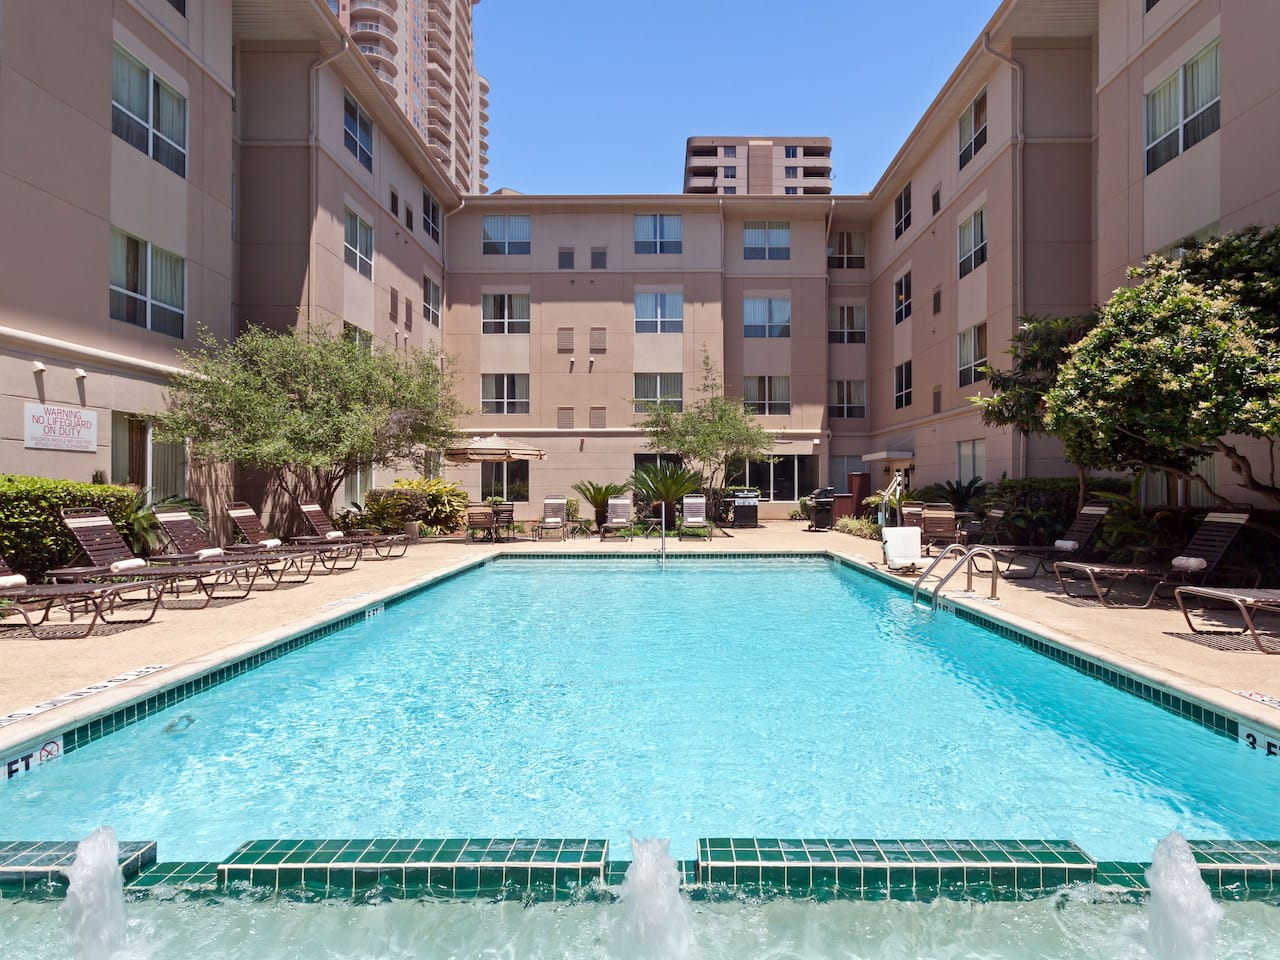 Hyatt House Outdoor Pool